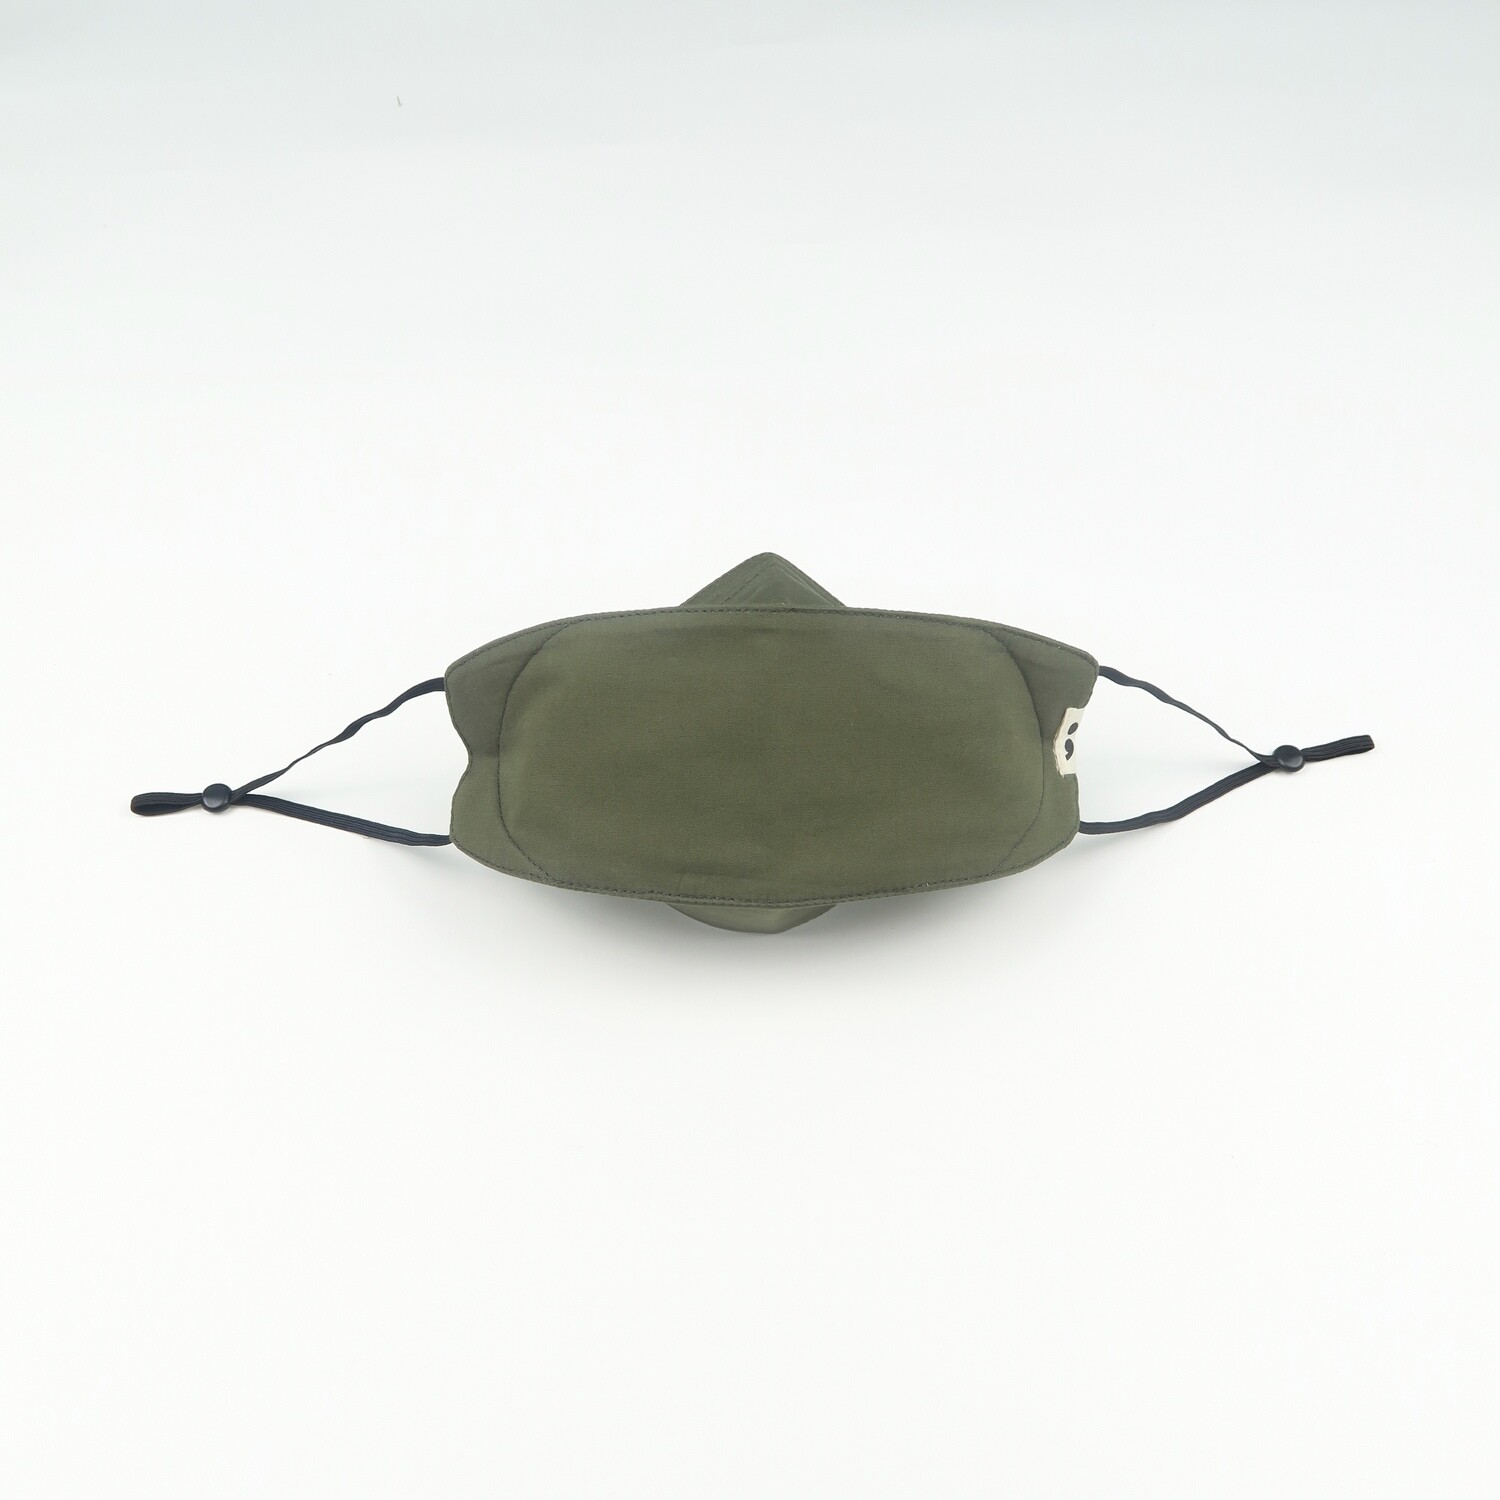 D-mask: Reusable & Washable Face Mask in Army Green